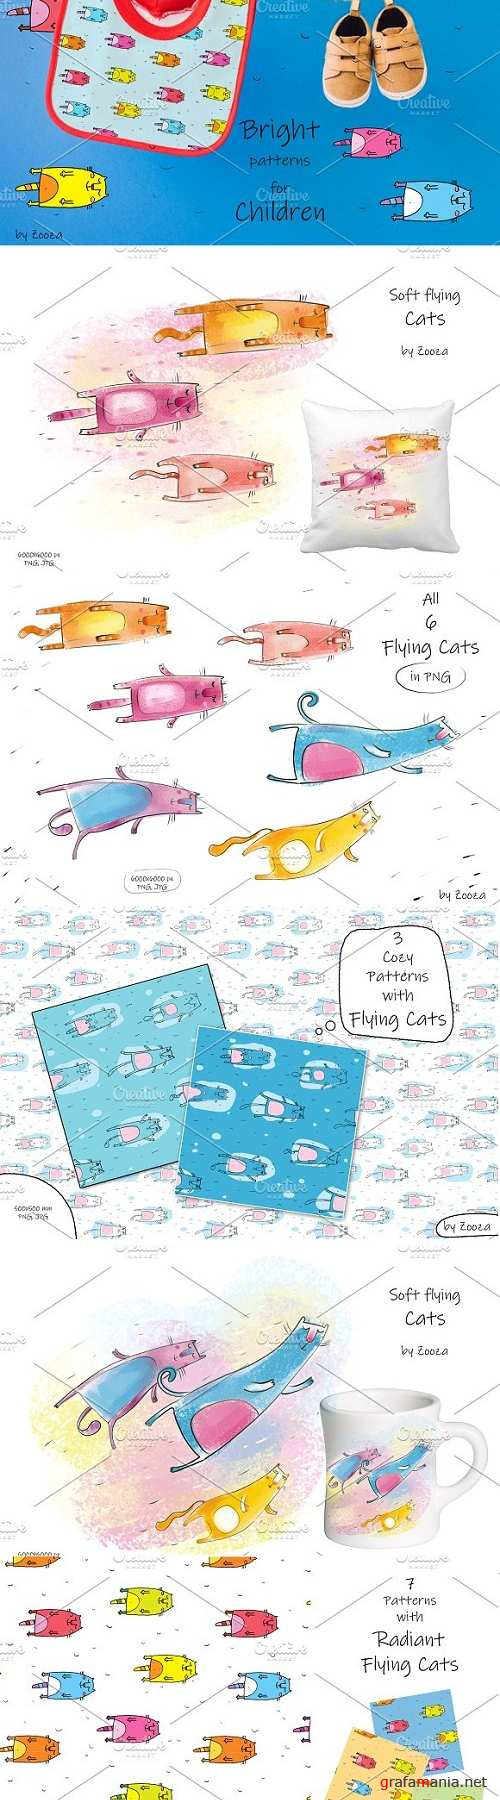 Flying Cats- patterns, illustrations - 3409058